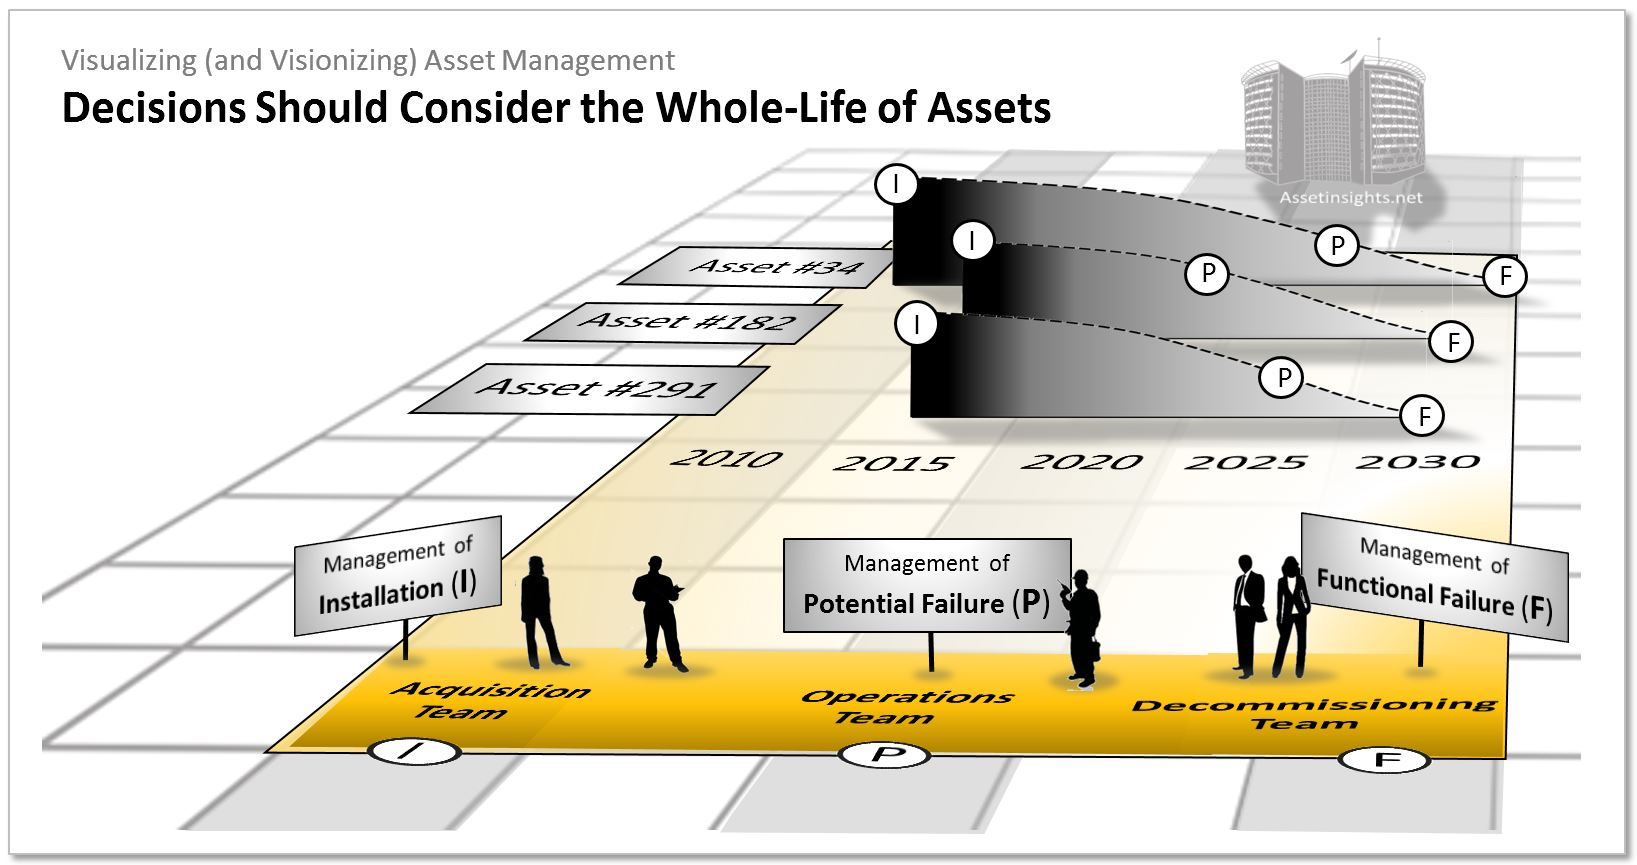 Decisions should consider the whole life of assets, including the I-P interval and the P-F interva